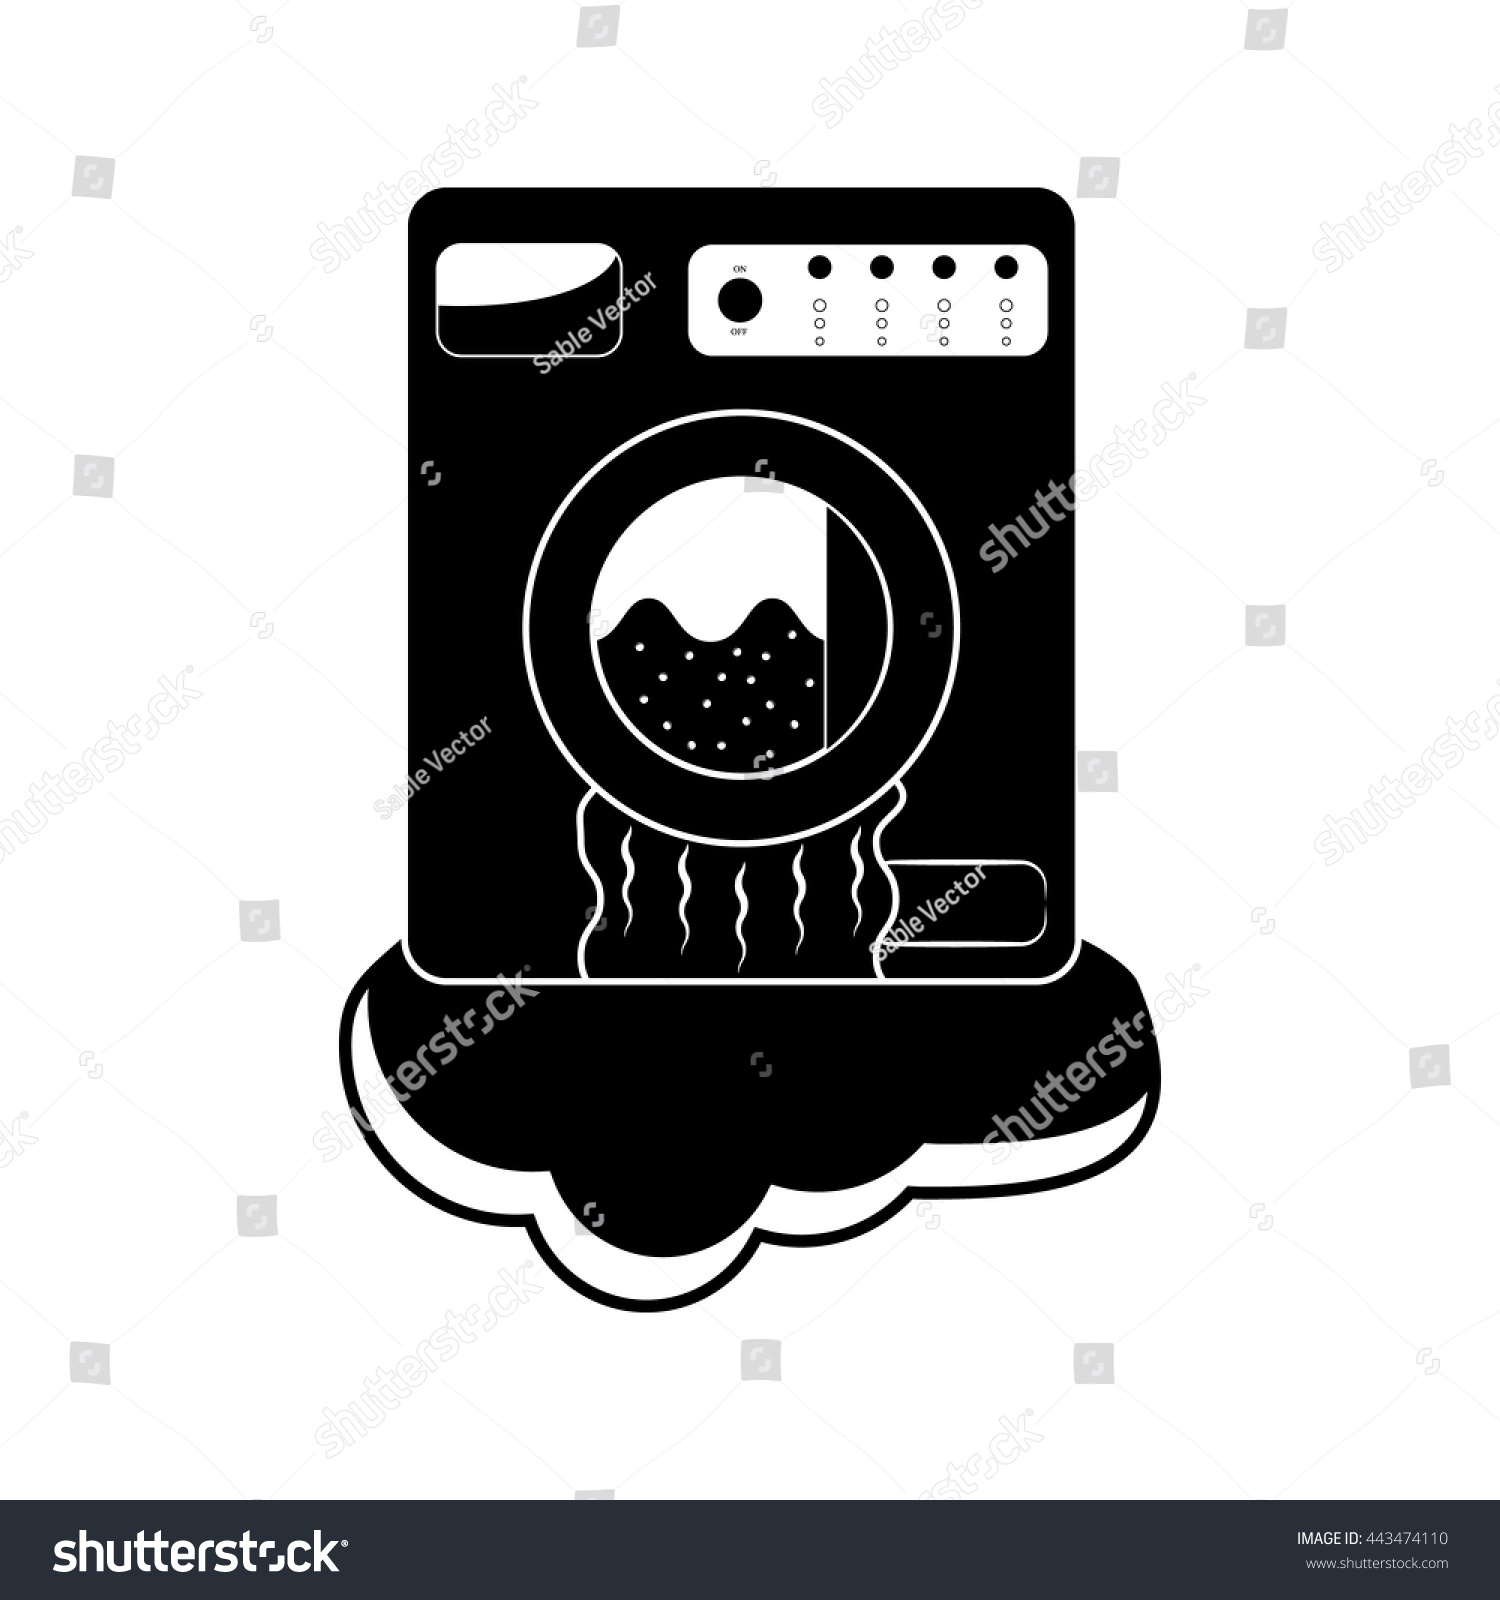 Broken Washing Machine Vector Icon Flat Stock Vector ...